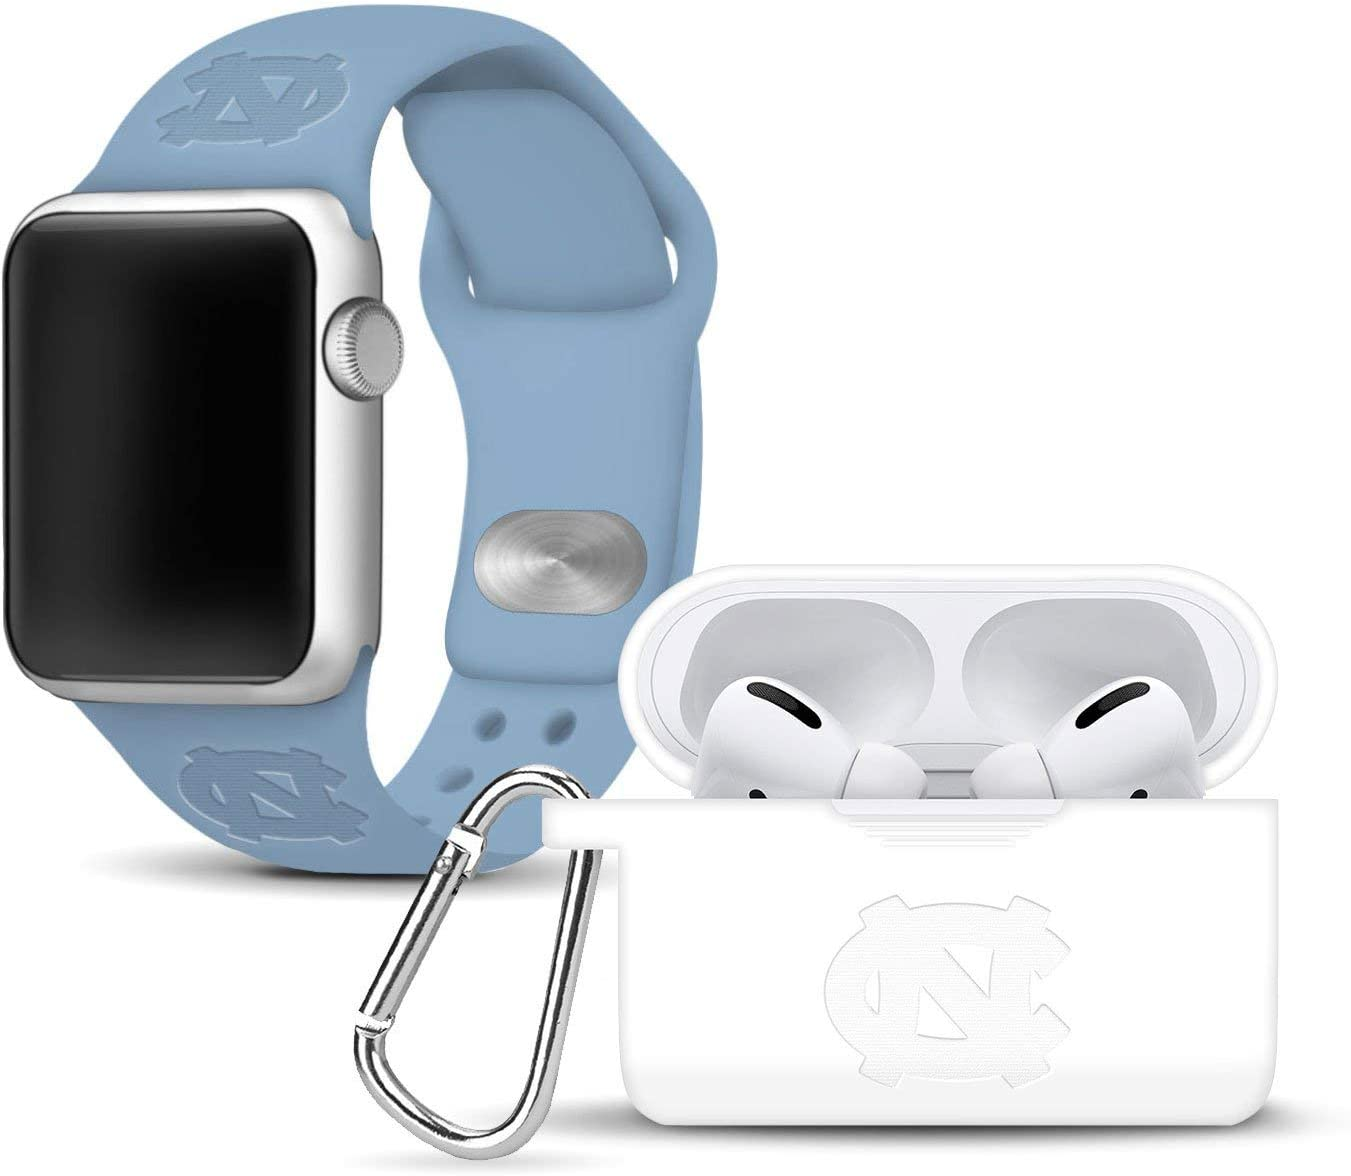 AFFINITY BANDS North Carolina Tar Heels Debossed Watch Band & Case Cover Combo Package Compatible with Apple Watch and AirPods PRO 38mm/40mm Light Blue/White